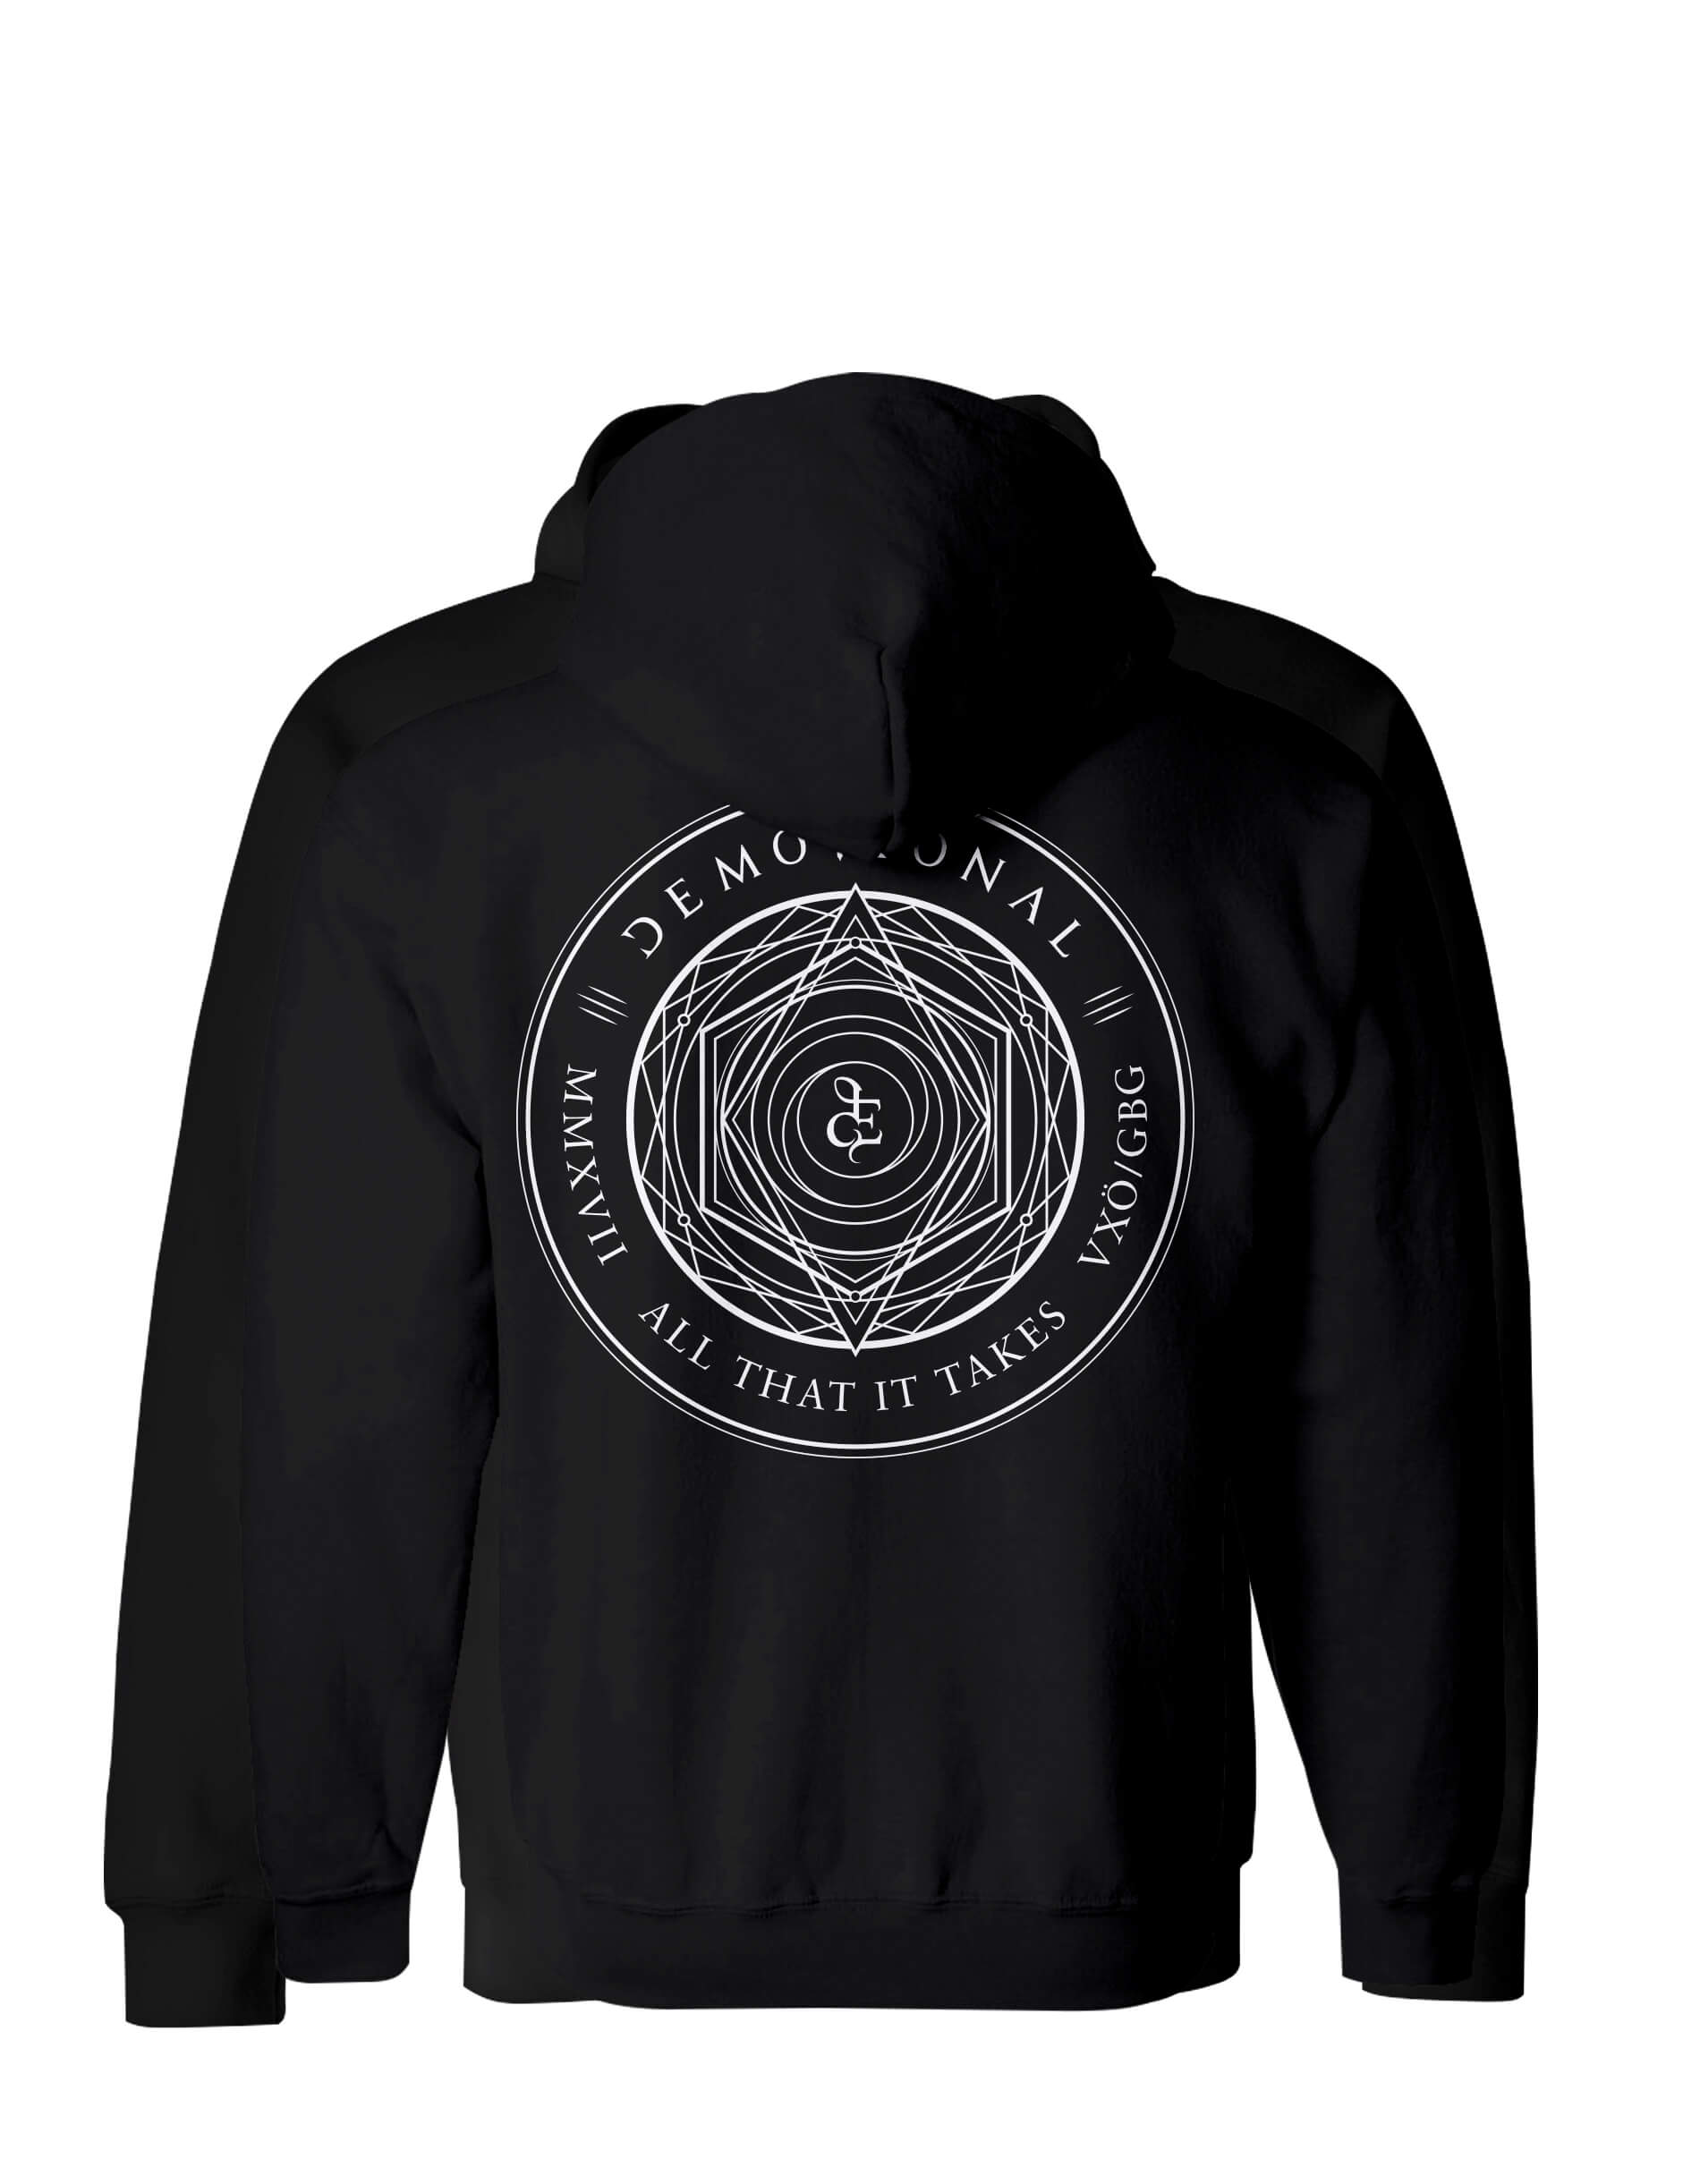 Demotional - All That It Takes Hoodie